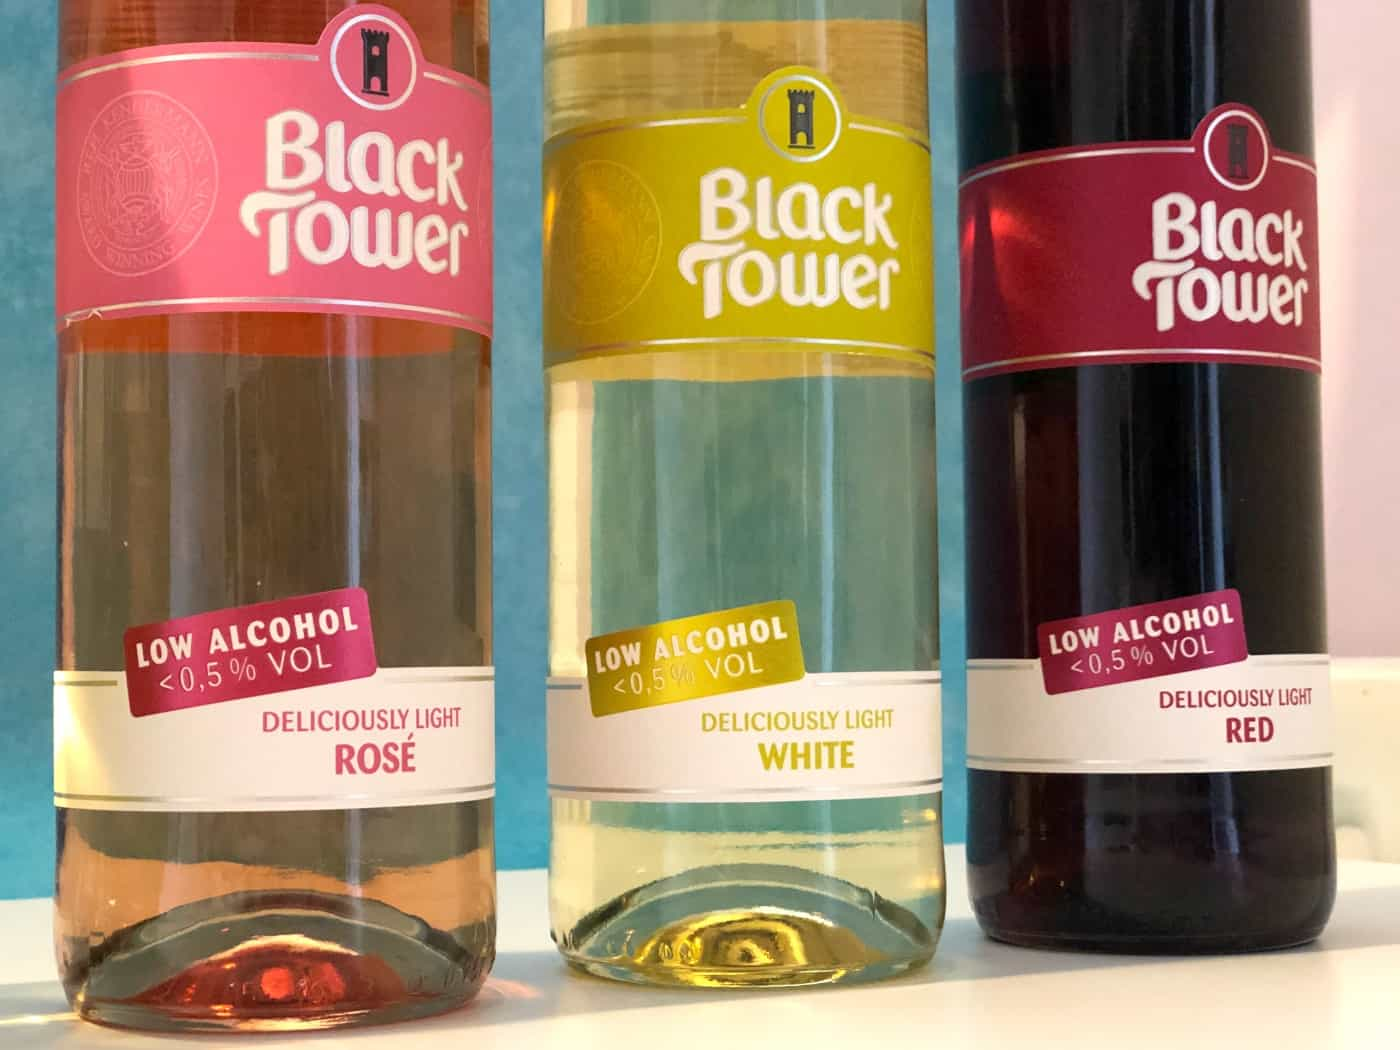 Black Tower Deliciously Light range